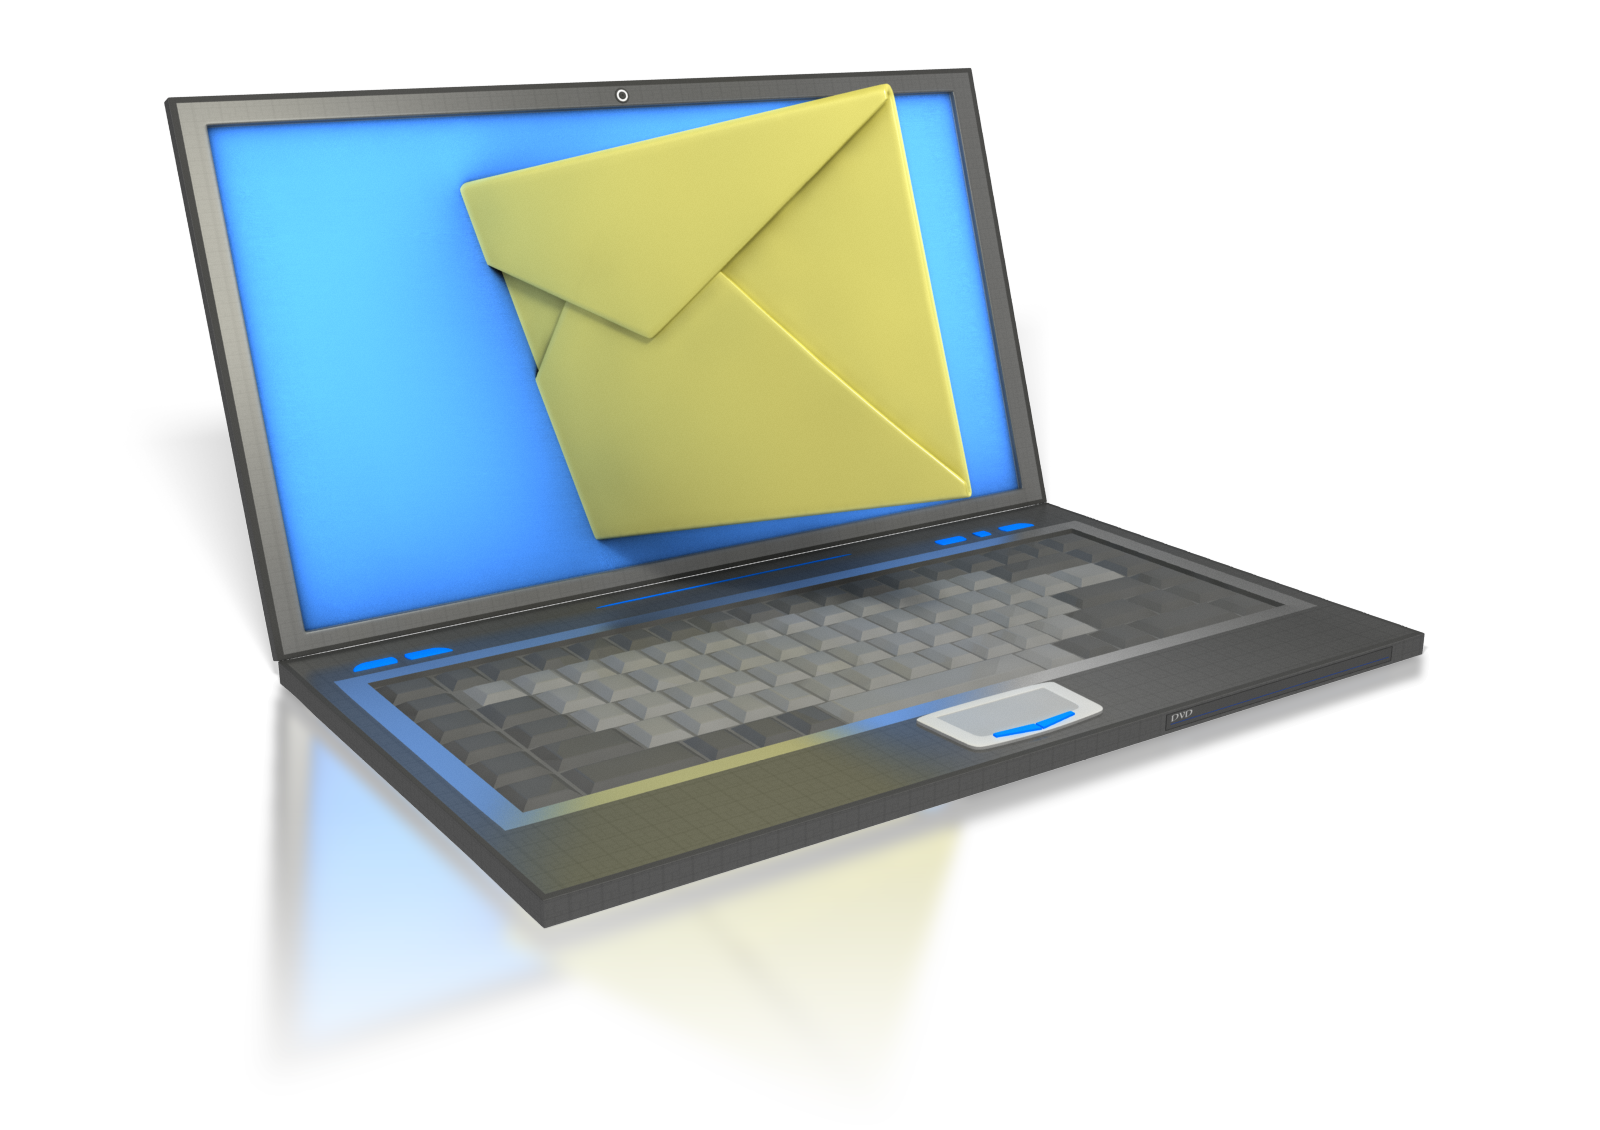 Email attachment best practices. Employee clipart computer